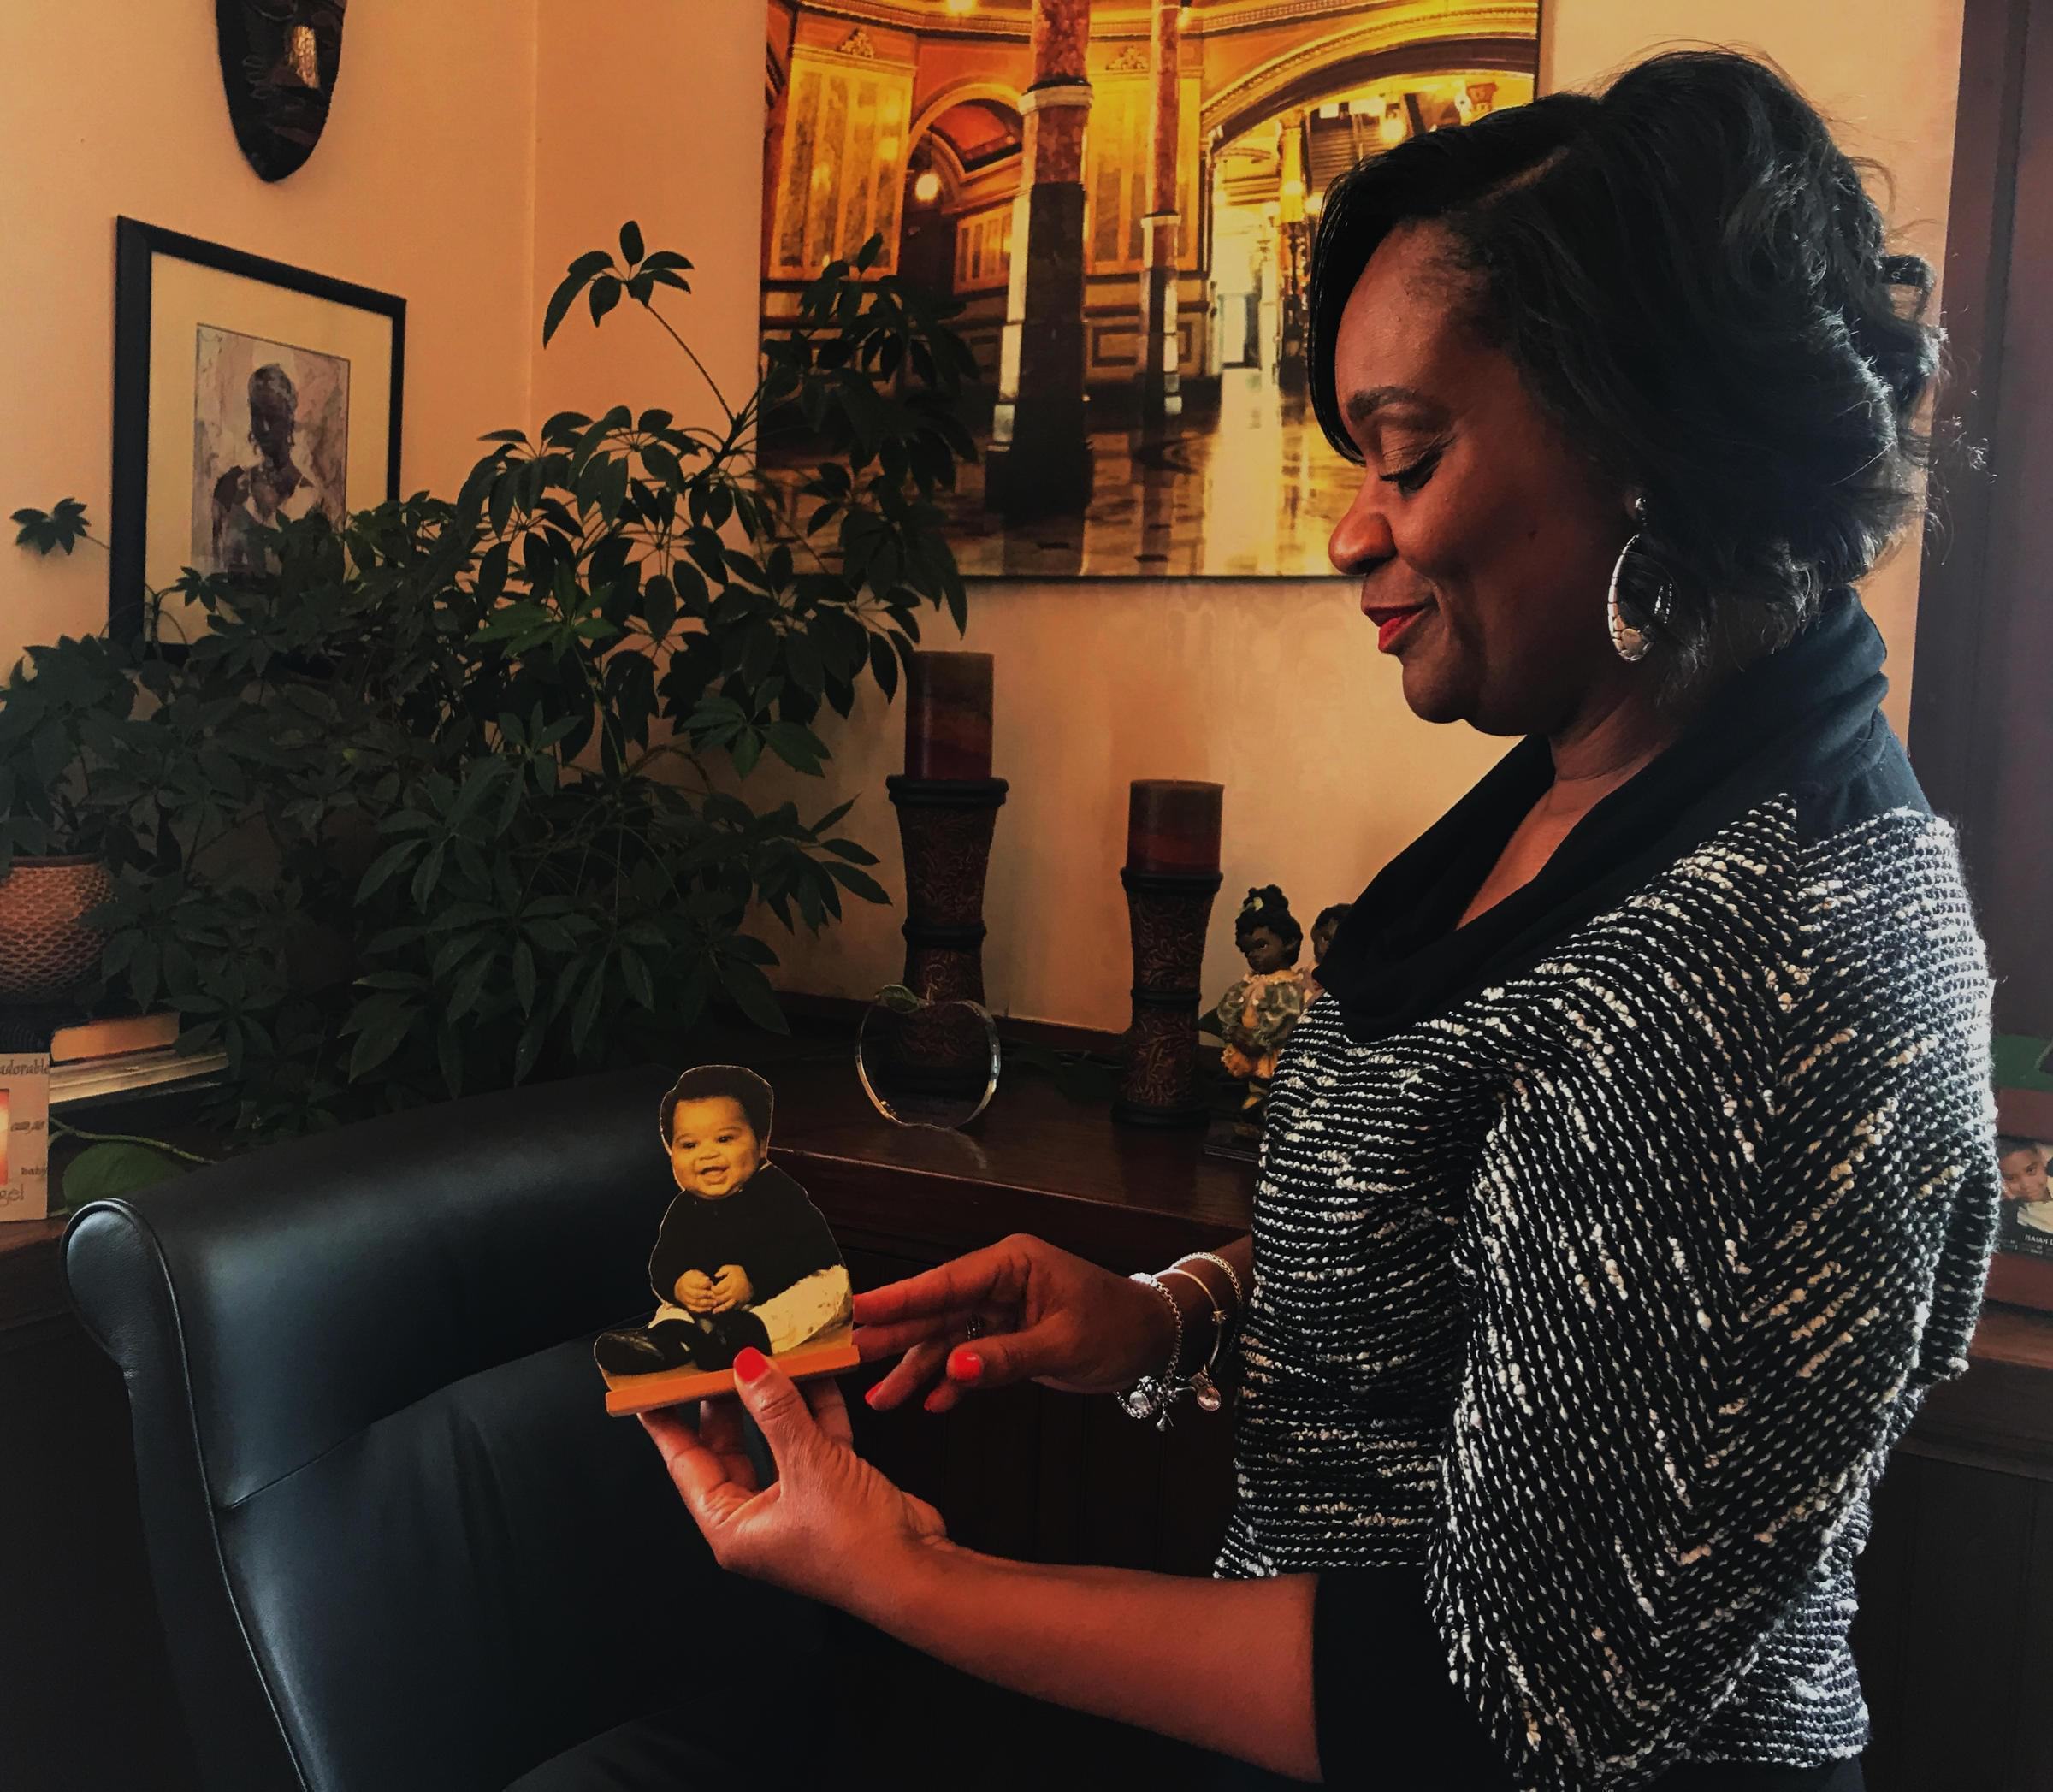 State Sen. Kimberly Lightford shows a picture of her son, Isaiah, who she had while serving in the Illinois Senate.